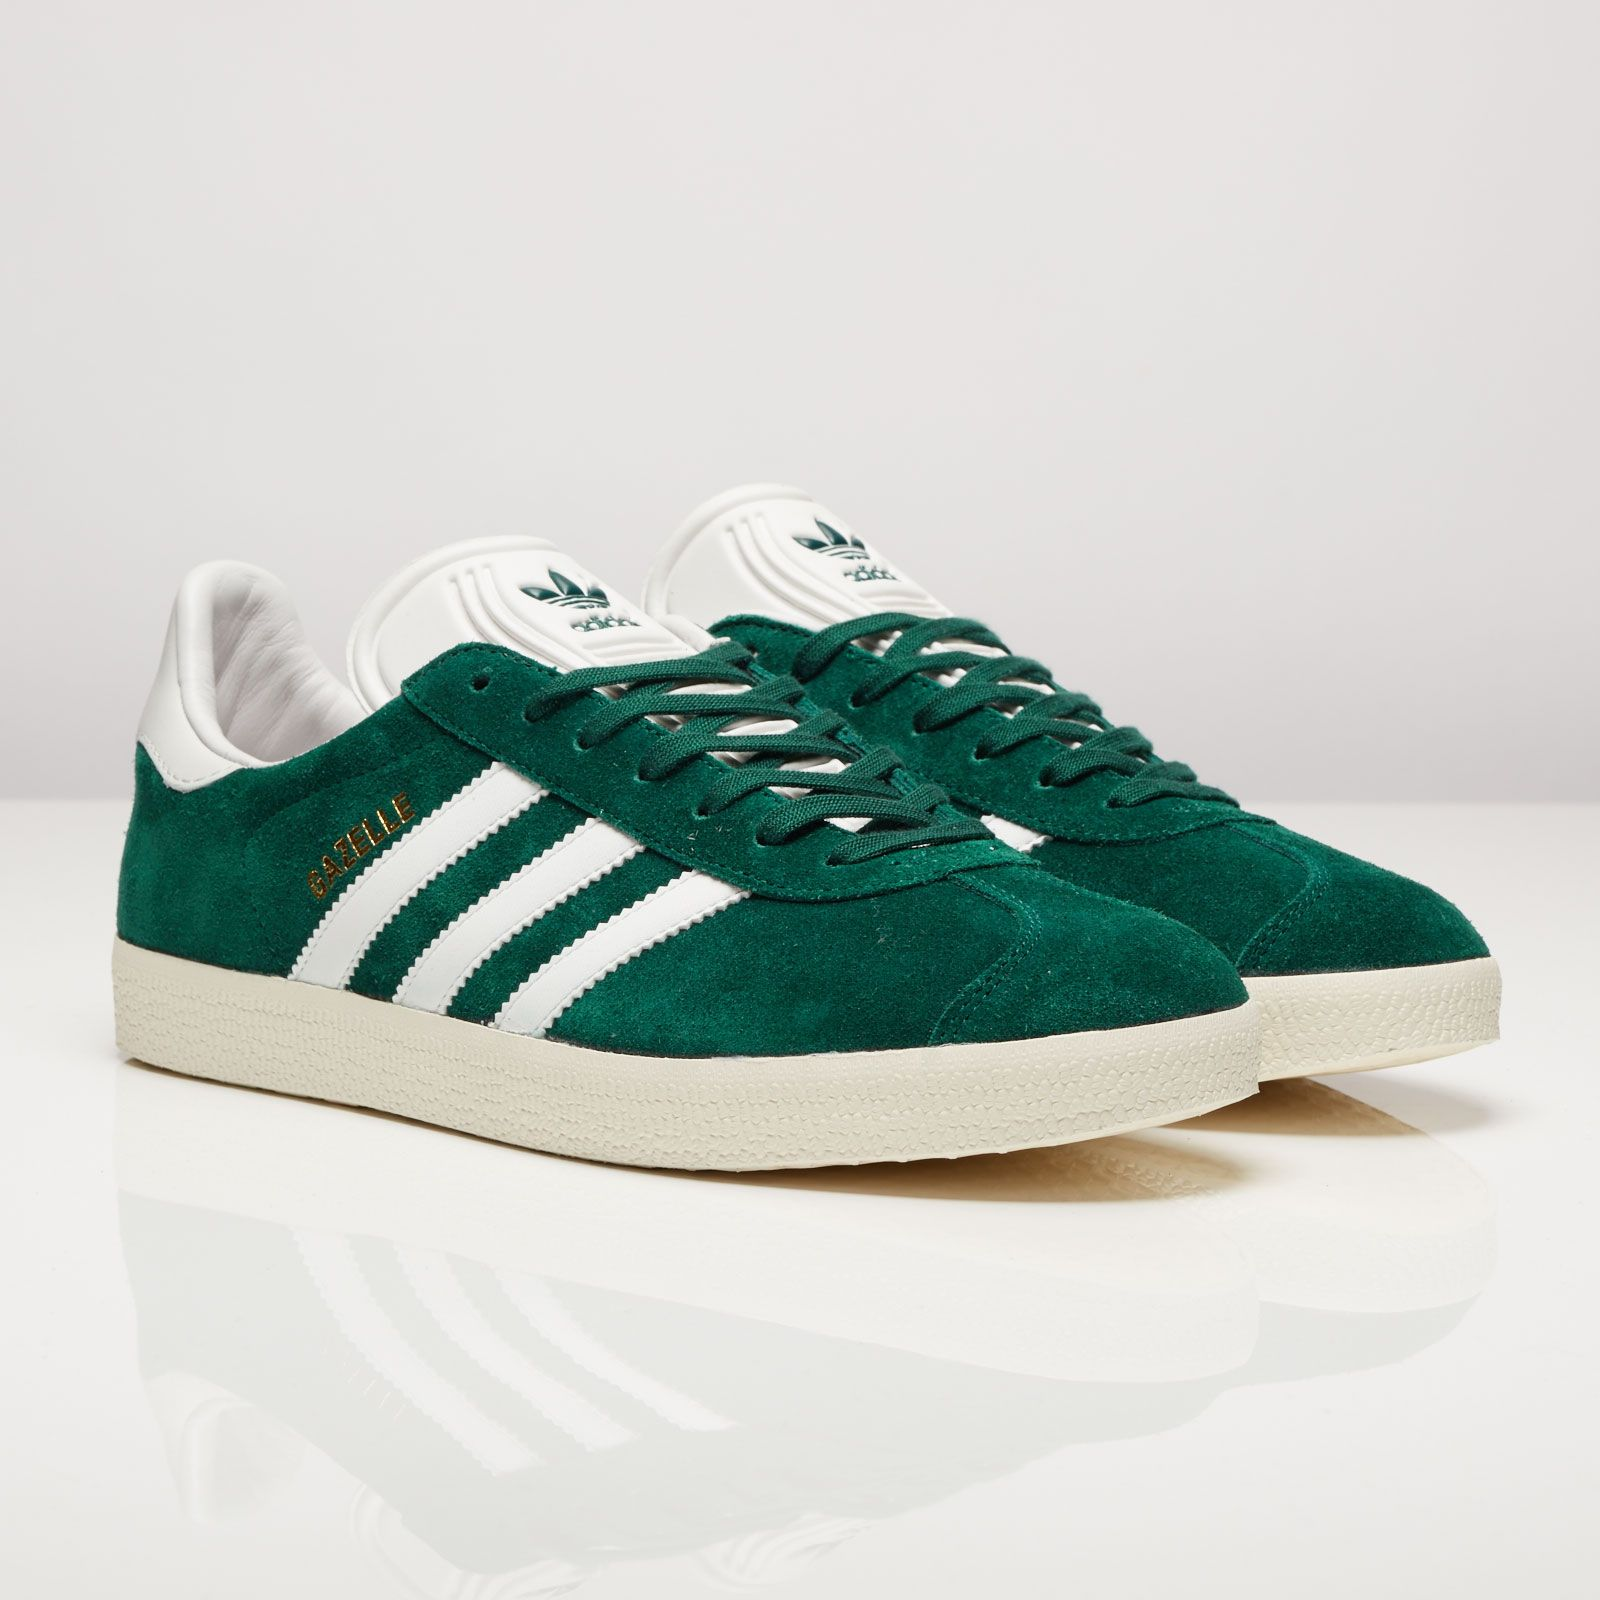 1c4764ff4622 adidas Gazelle. Green colorway is most classic. Great warm weather shoe,  although limited versatility.